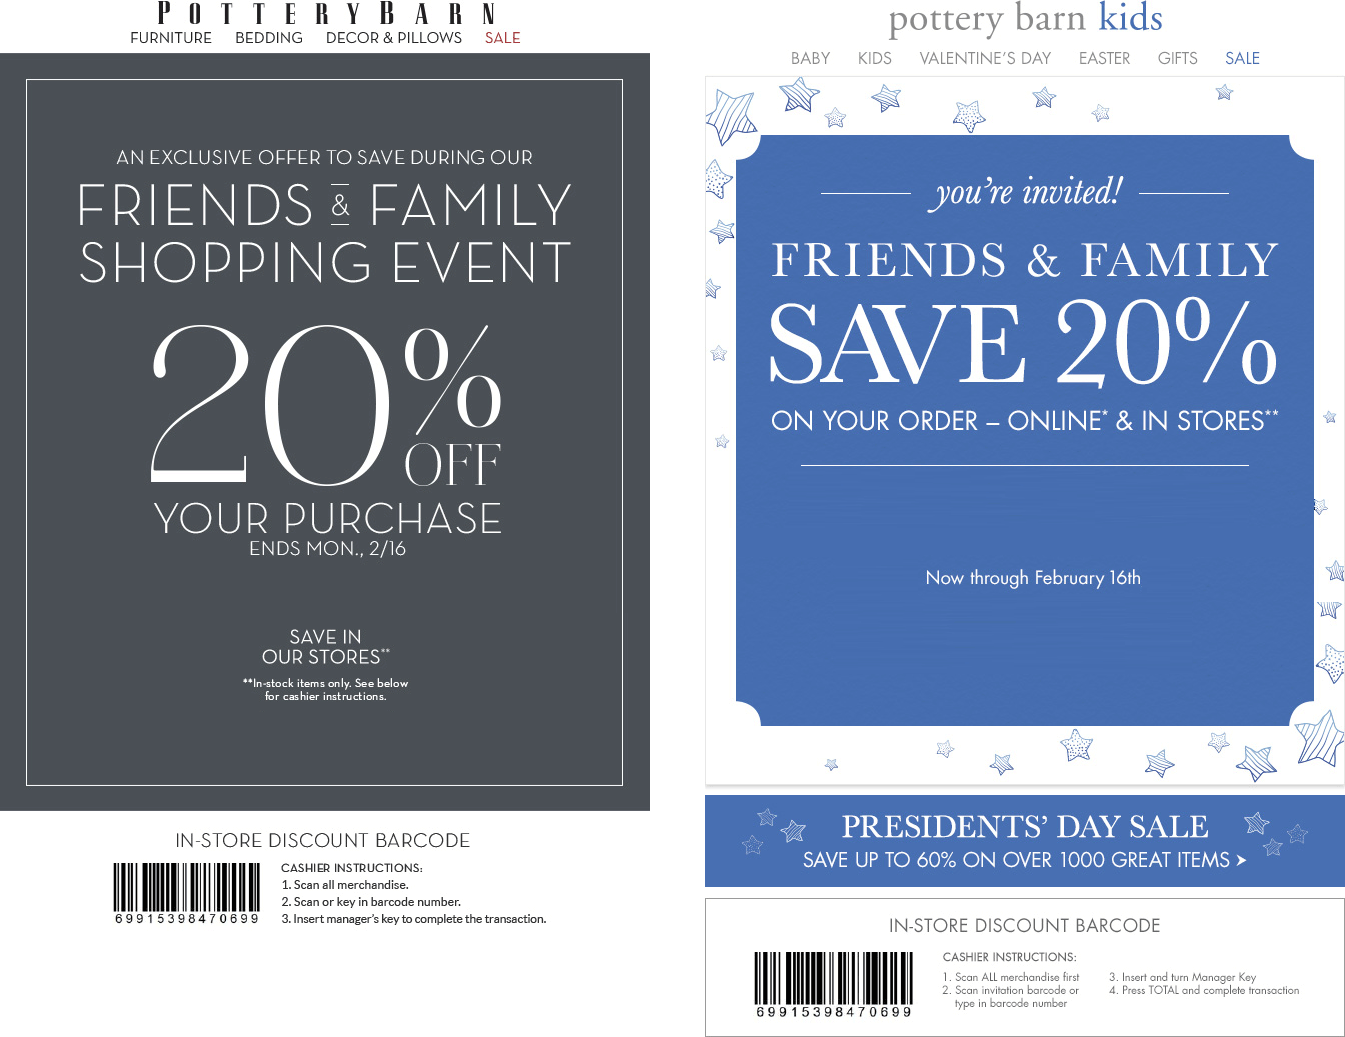 Pottery Barn Coupons 20 Off At Pottery Barn Amp Pottery